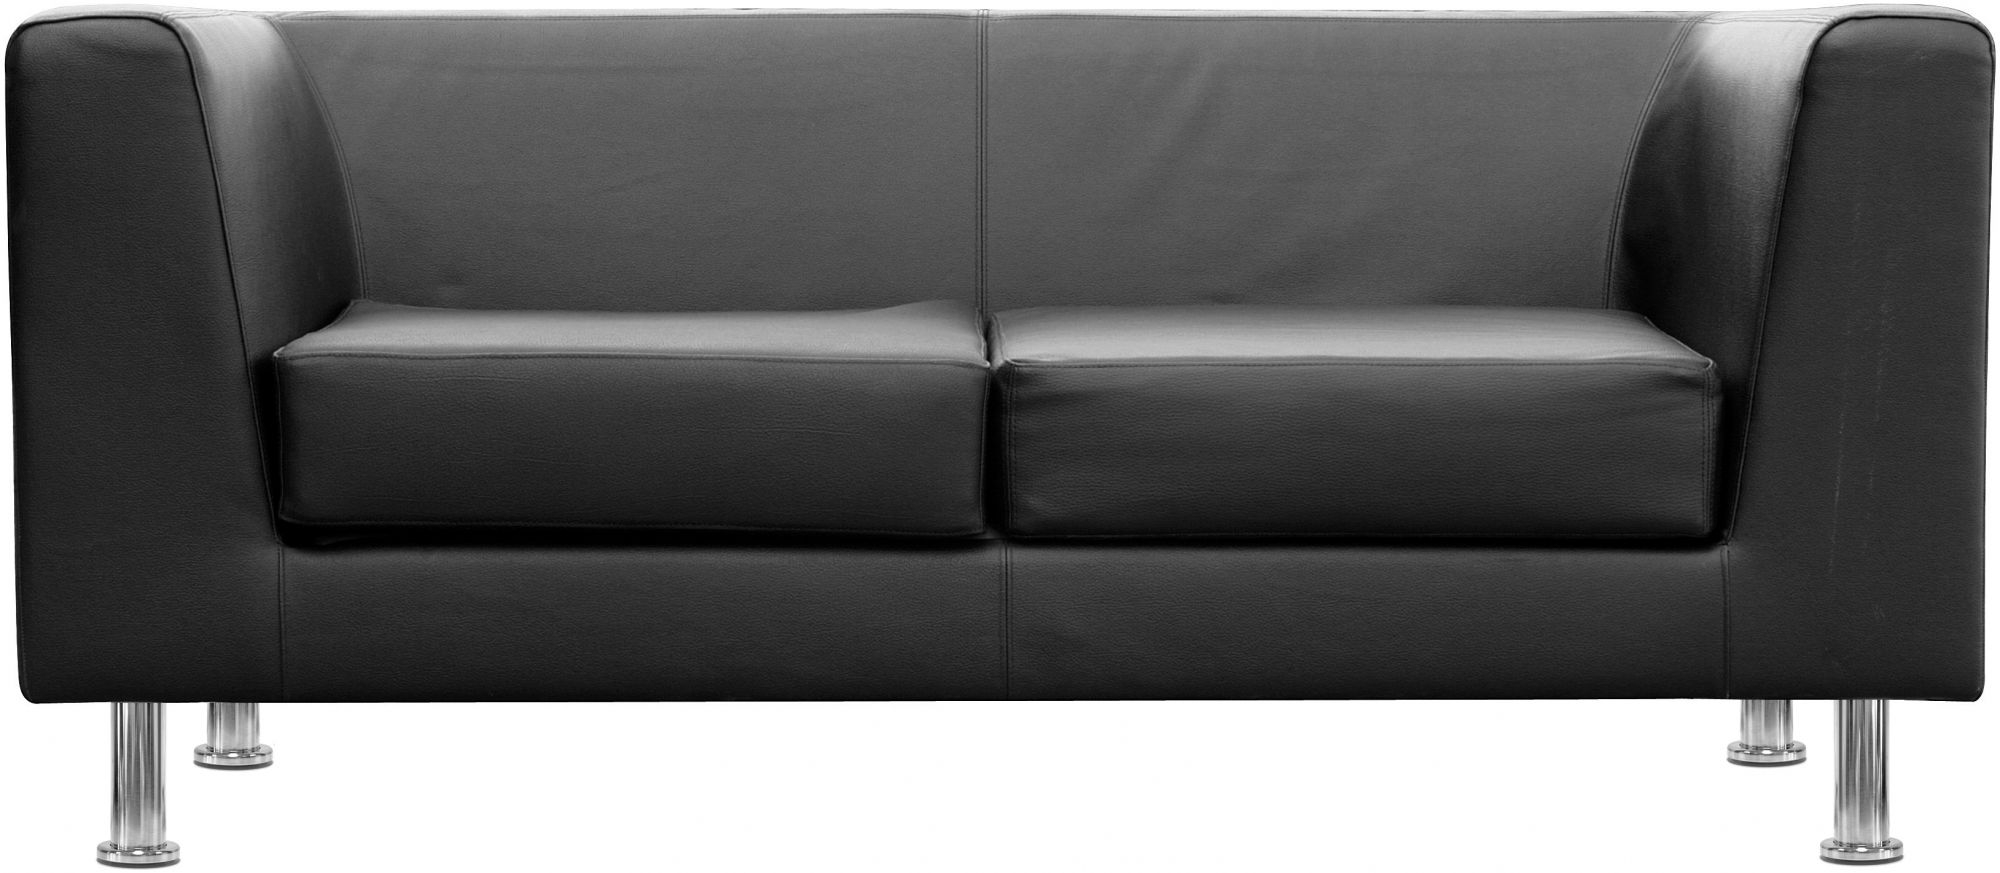 Frvi Box Two Seater Sofa Band A Fabric Regarding Two Seater Sofas (Image 11 of 15)